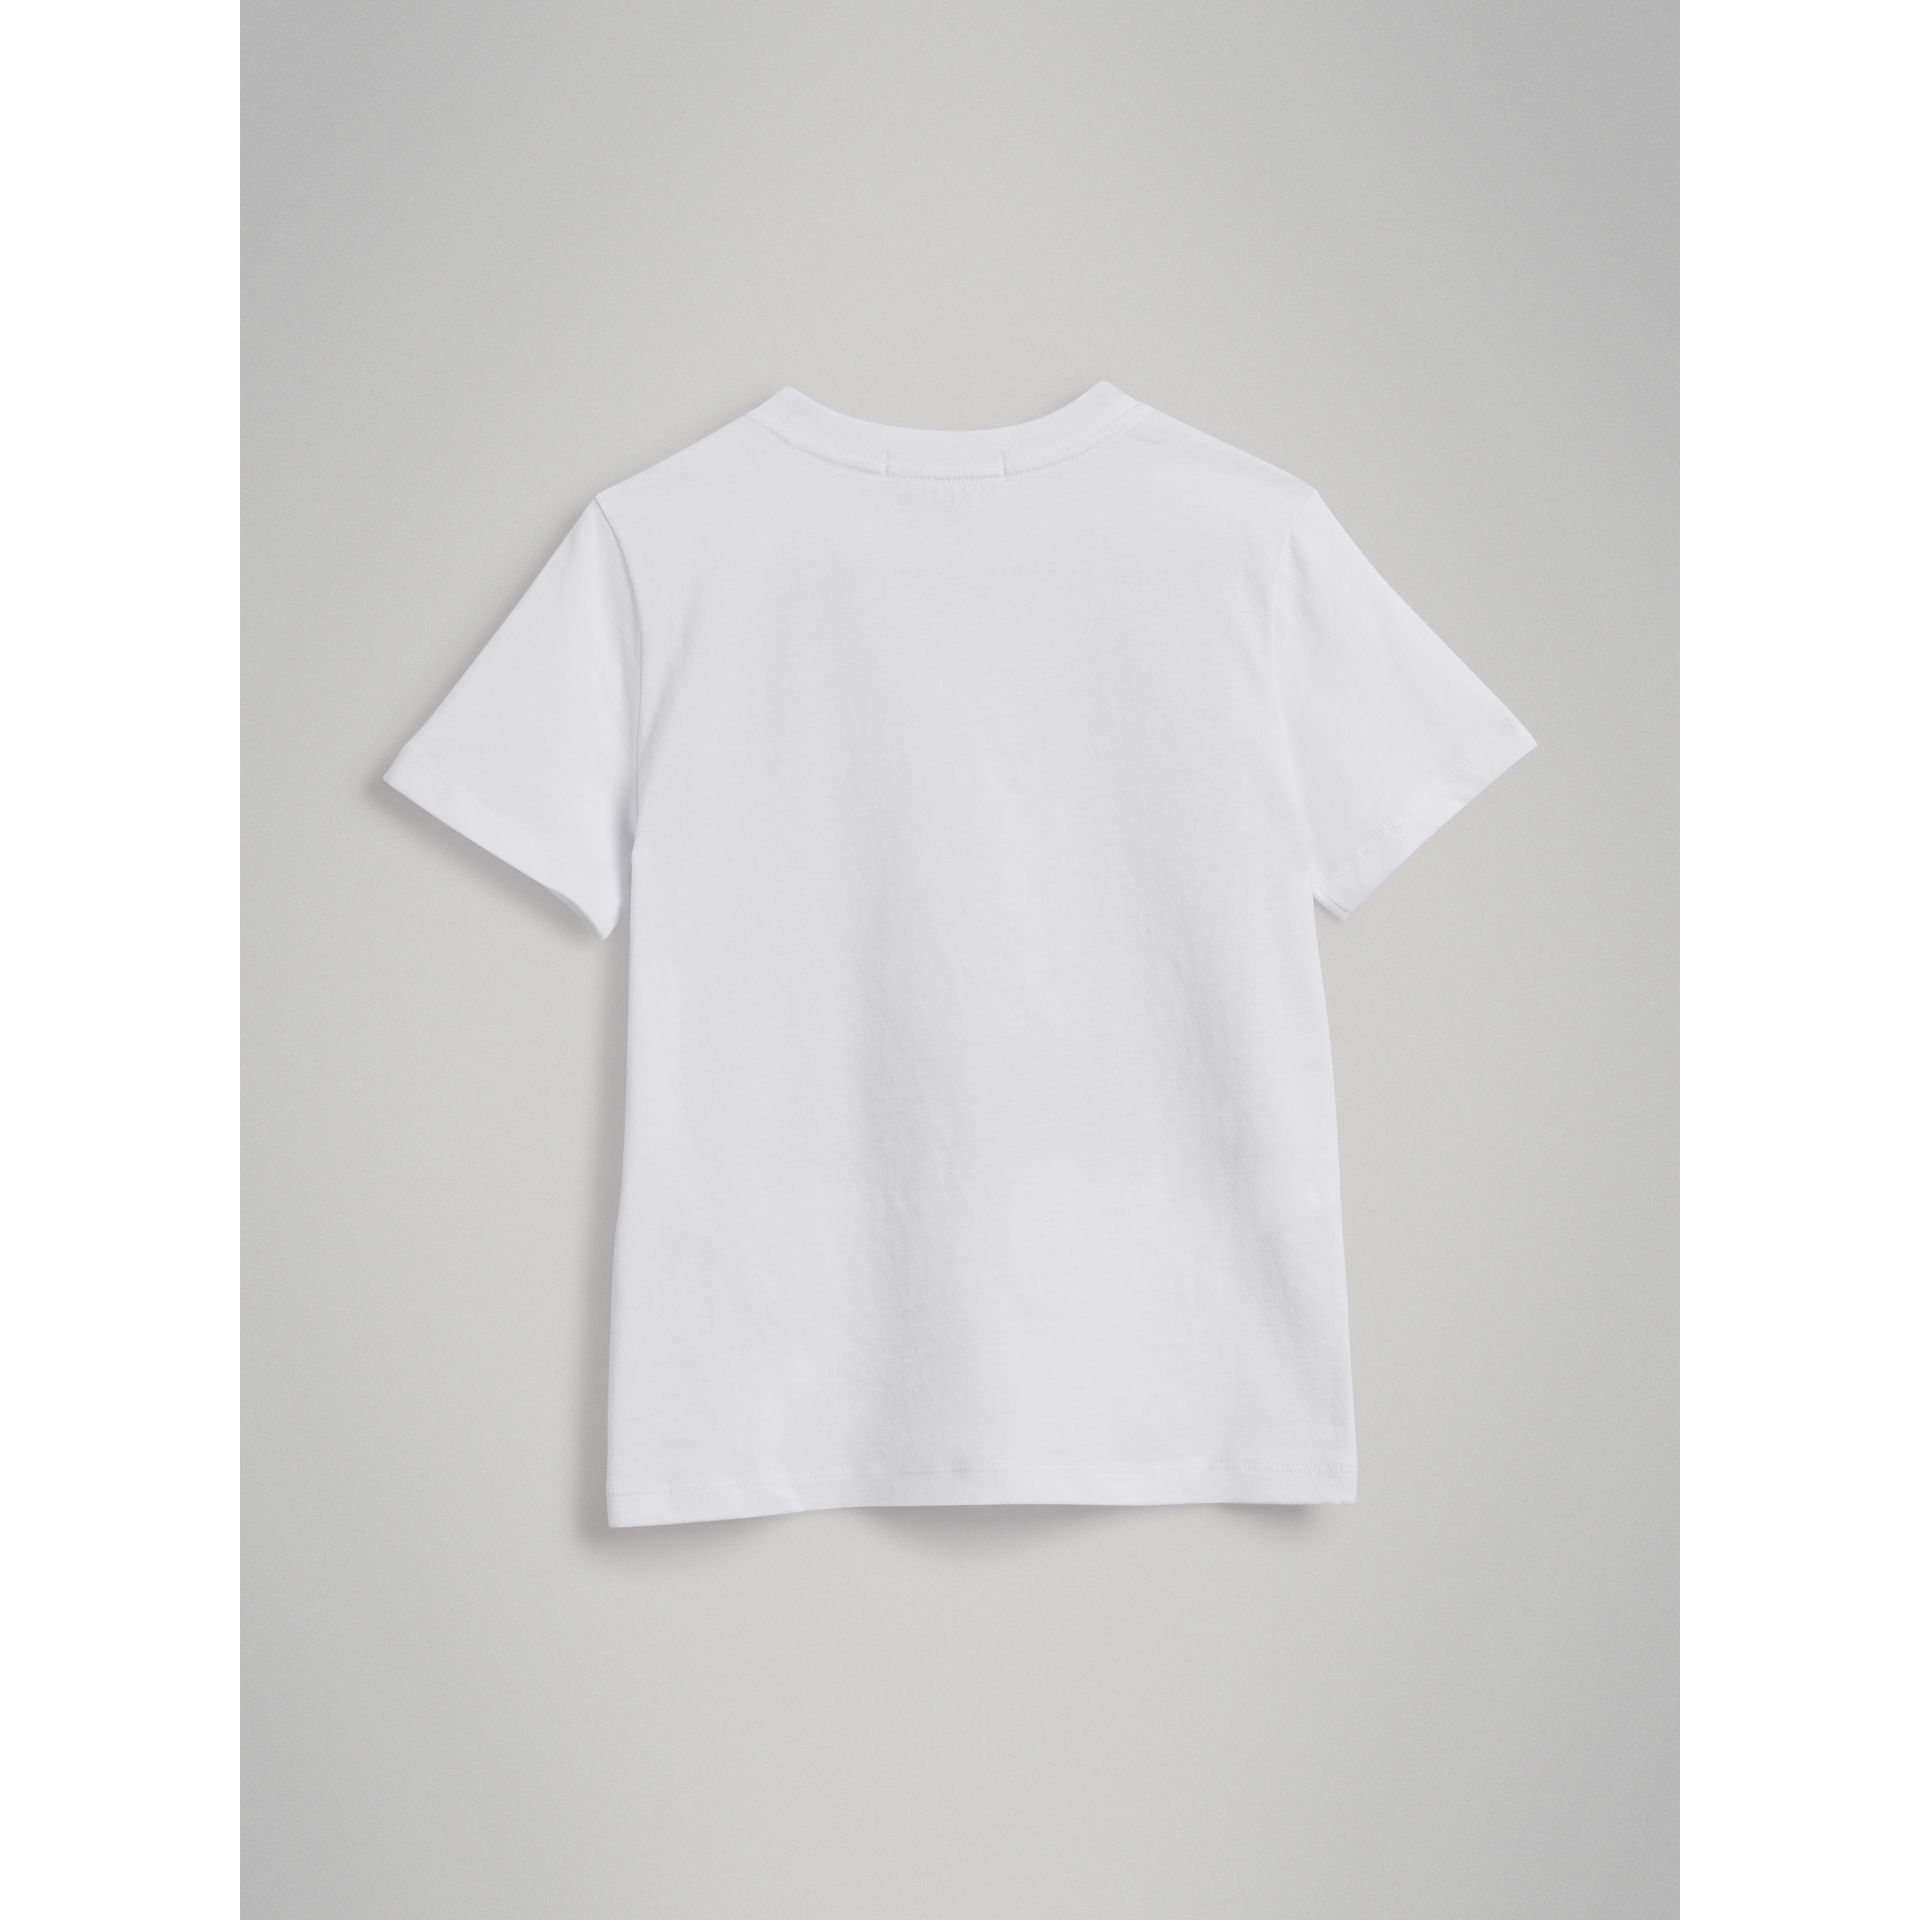 London Polaroid Print Cotton T-shirt in White - Boy | Burberry United Kingdom - gallery image 3